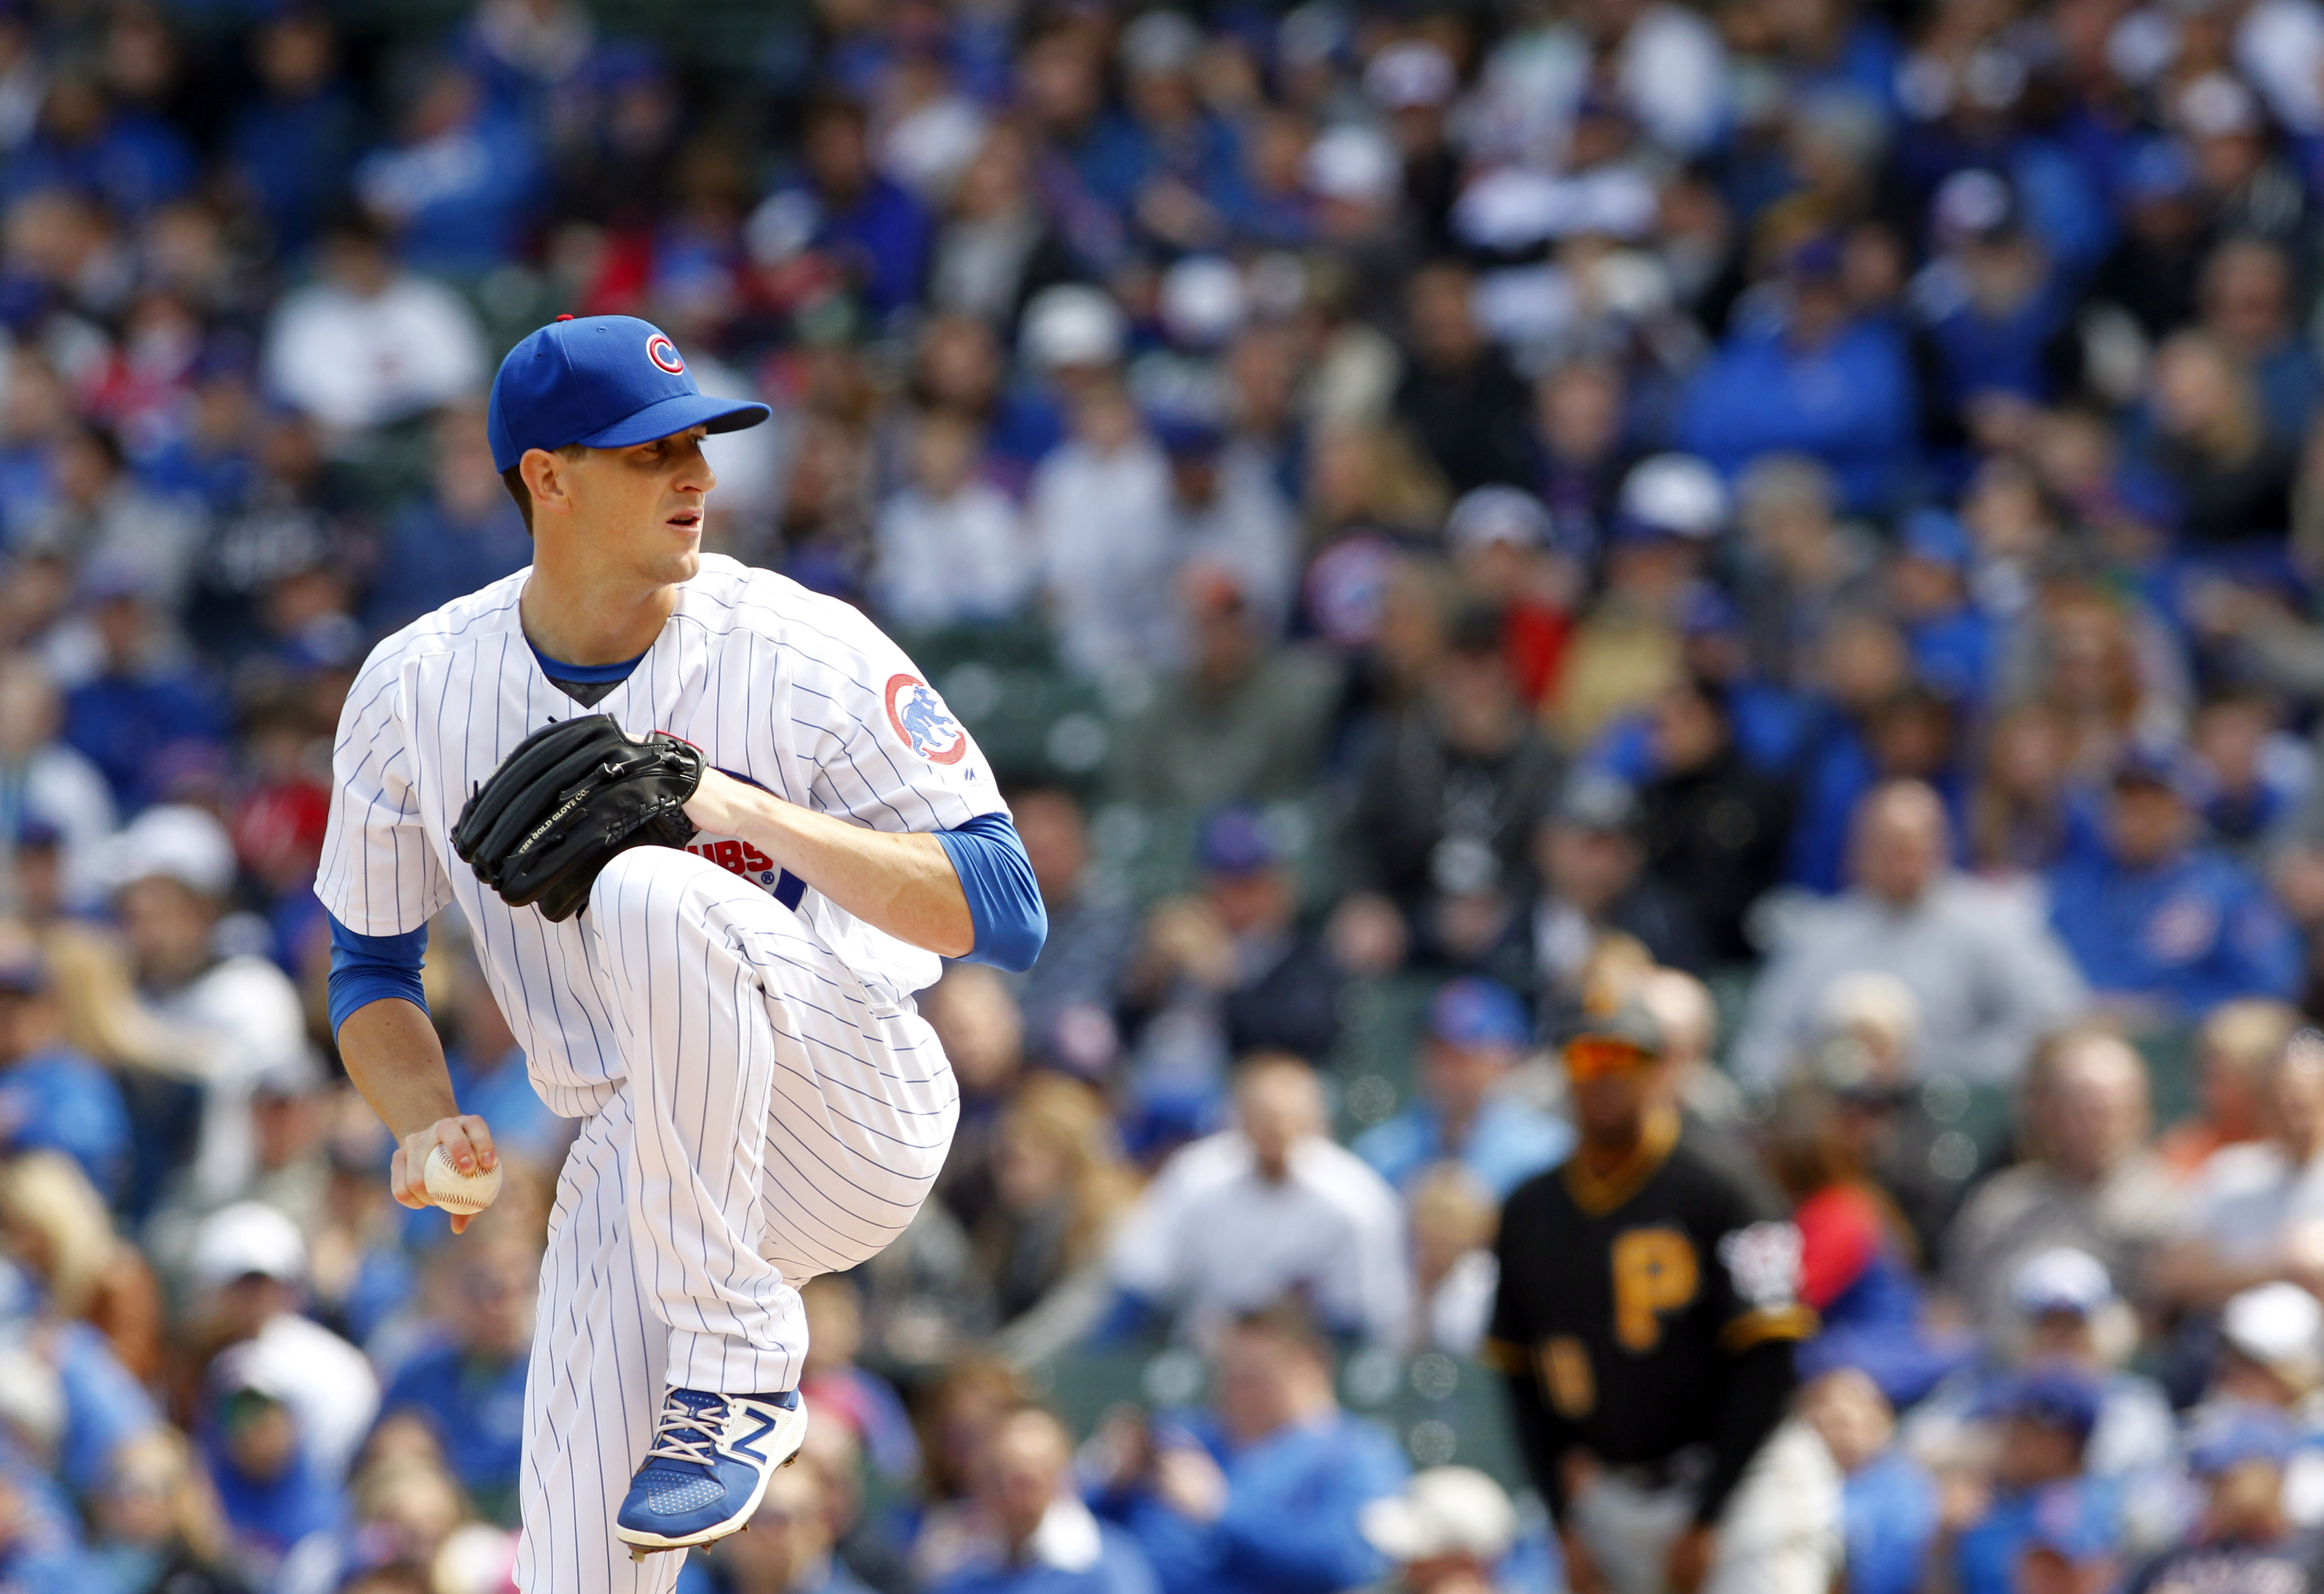 10010578-mlb-pittsburgh-pirates-at-chicago-cubs